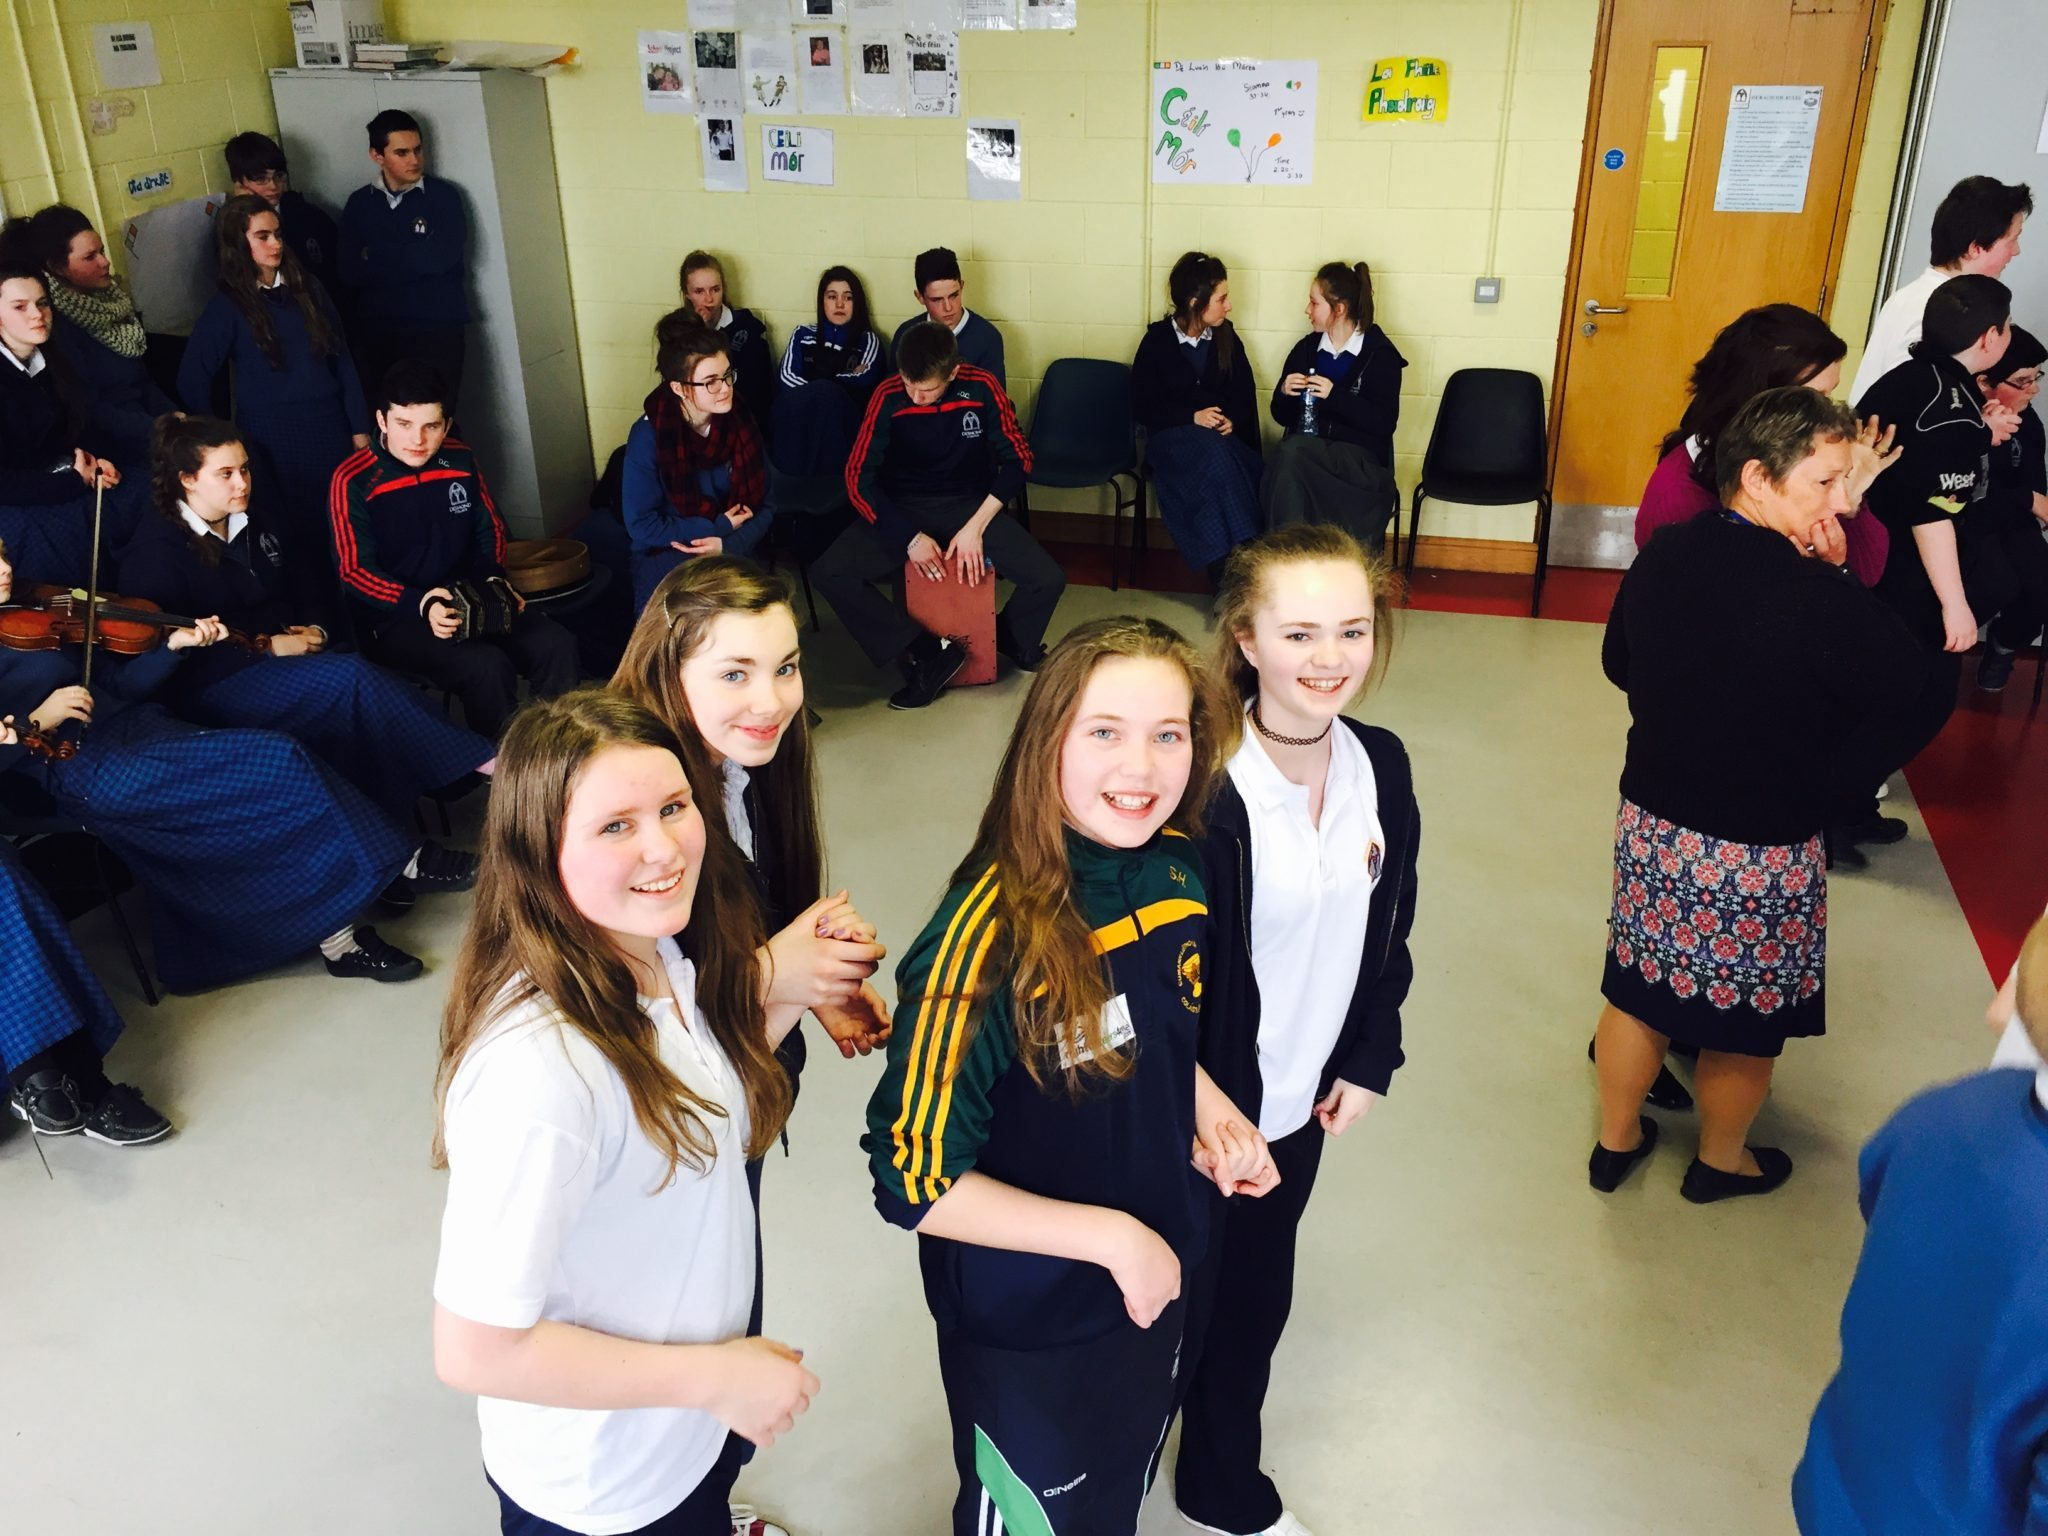 Siobhan Hurley, Kelli Gayer,Sophie Leenders and Eve Mountgomery all First Year students getting ready to 'Shoe the Donkey' at the Irish Céilí.